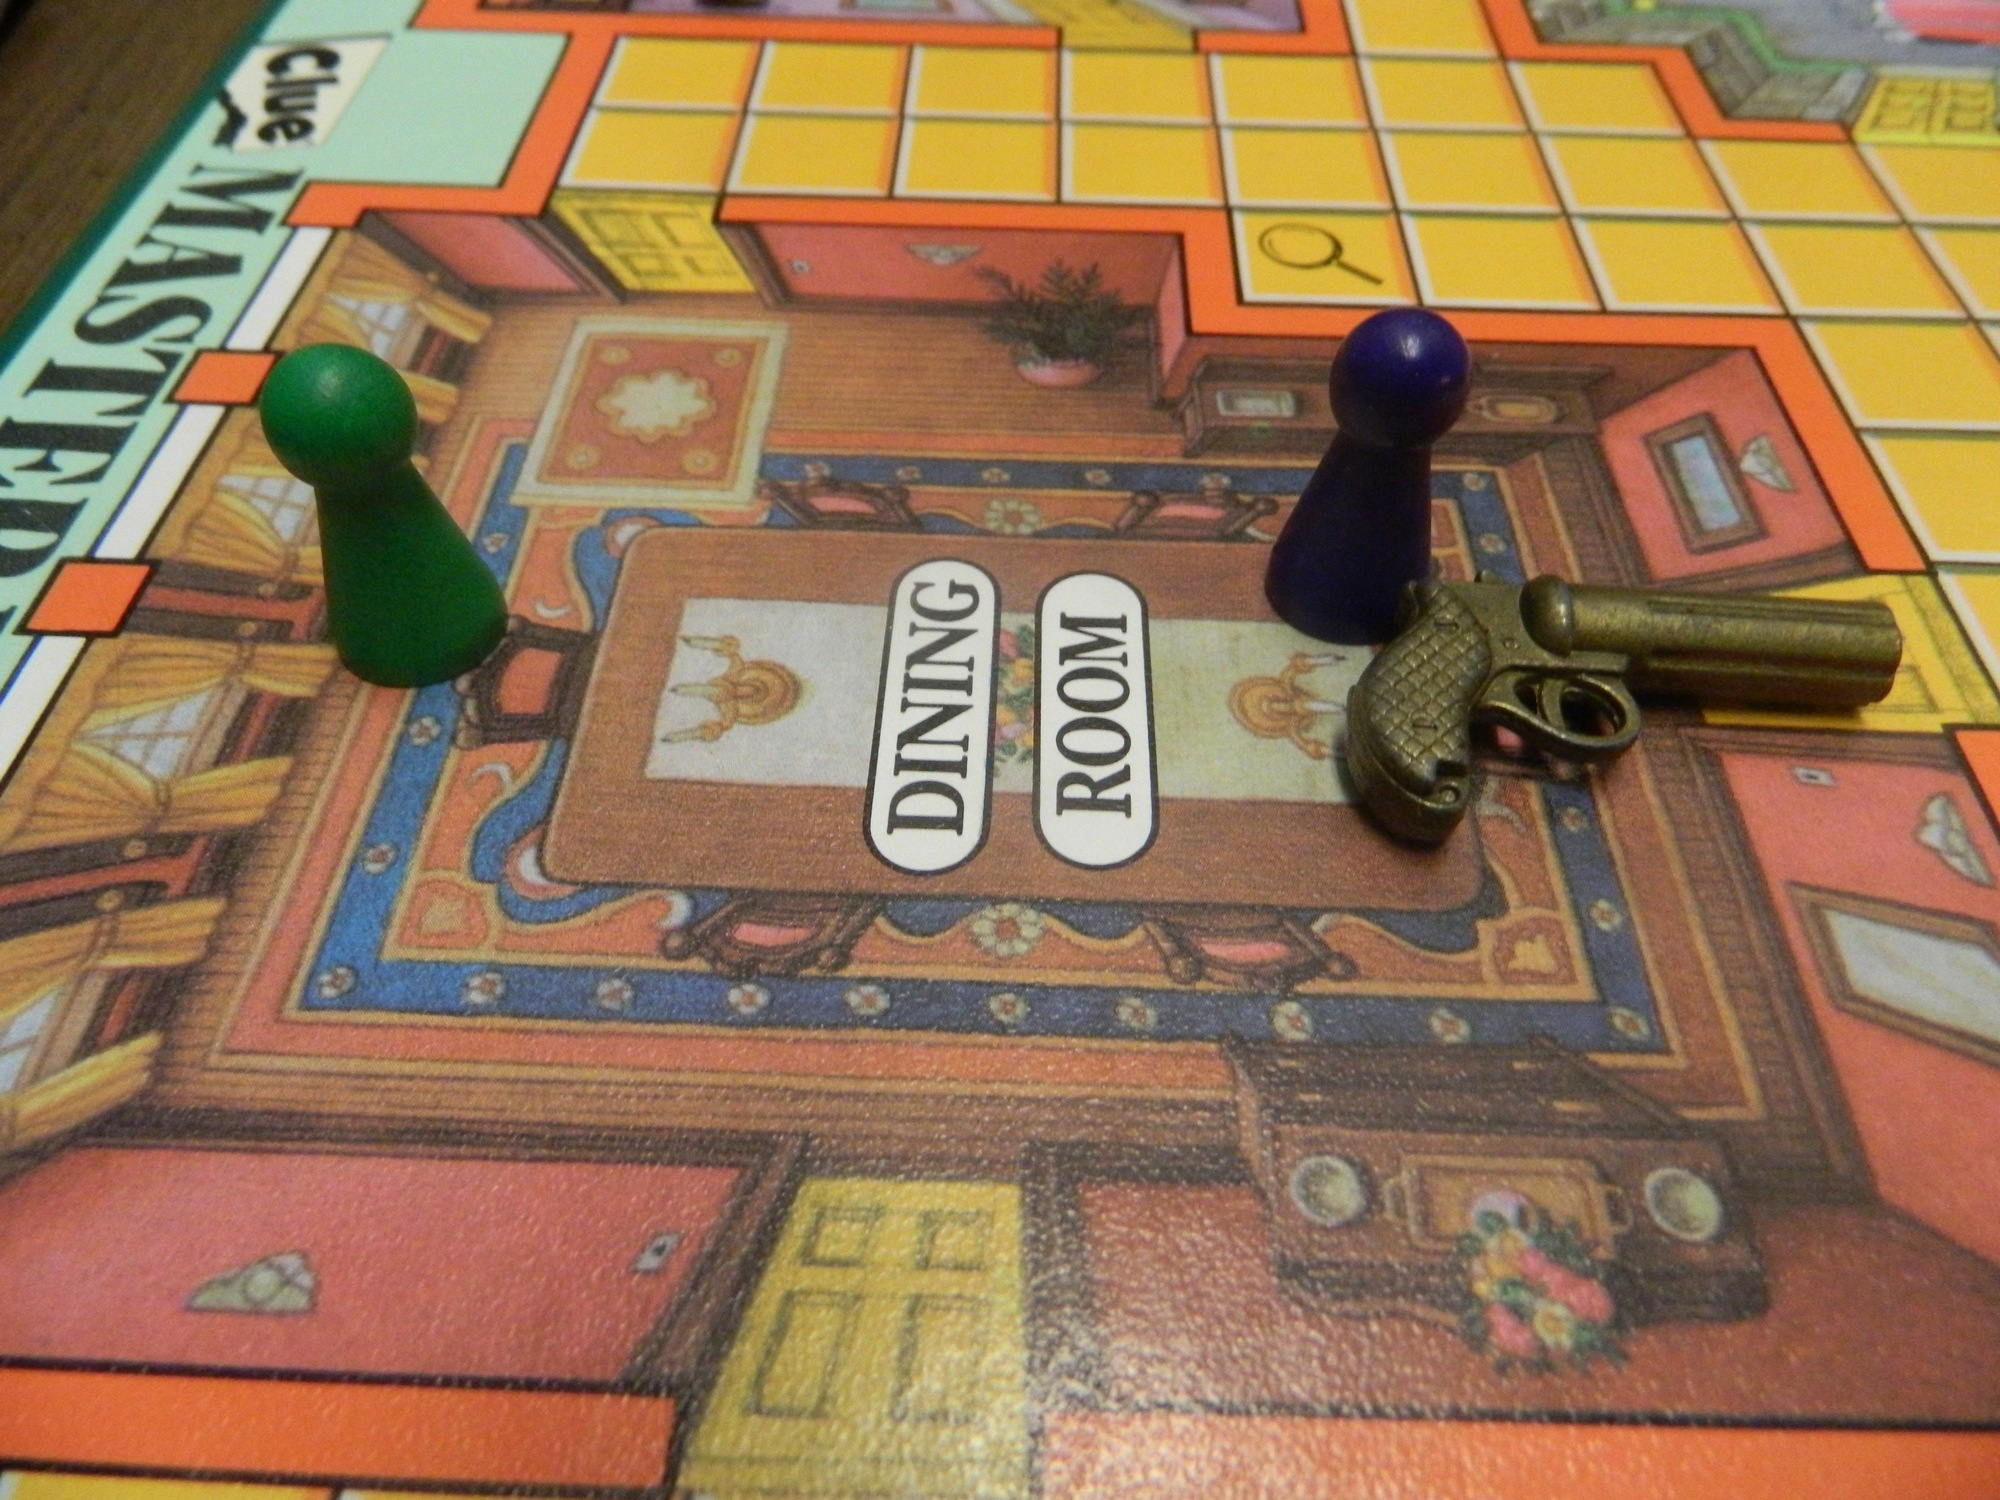 Clue Master Detective Board Game Review Geeky Hobbies